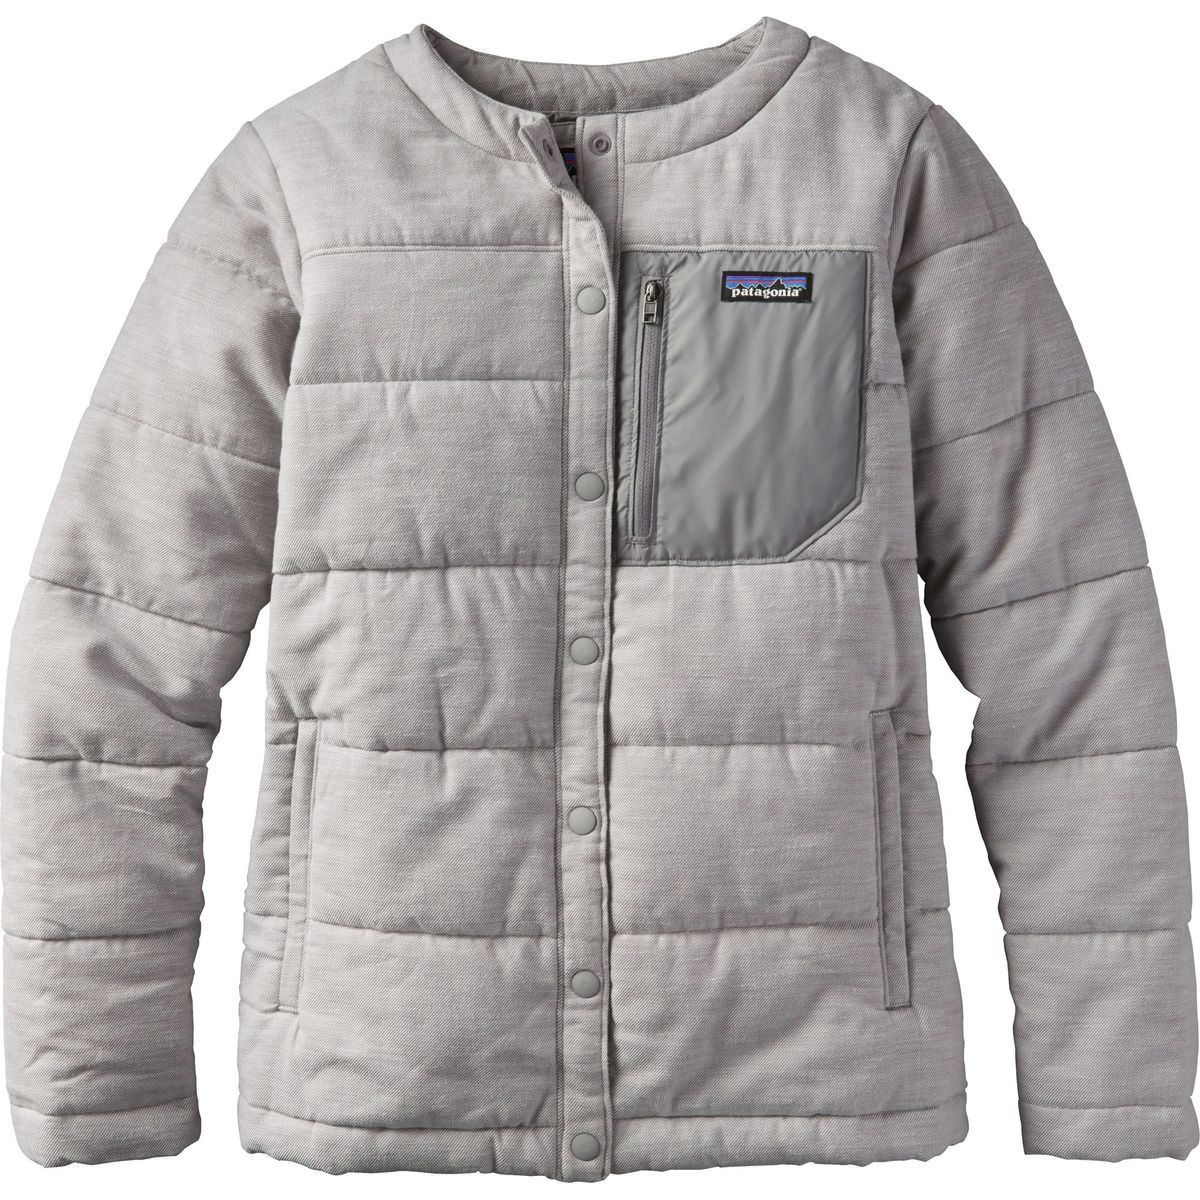 Campfire ready, the new Patagonia Women's Insulated Heywood Jacket is an insulated  flannel shirt jacket with clean lines and a simple snap closure.